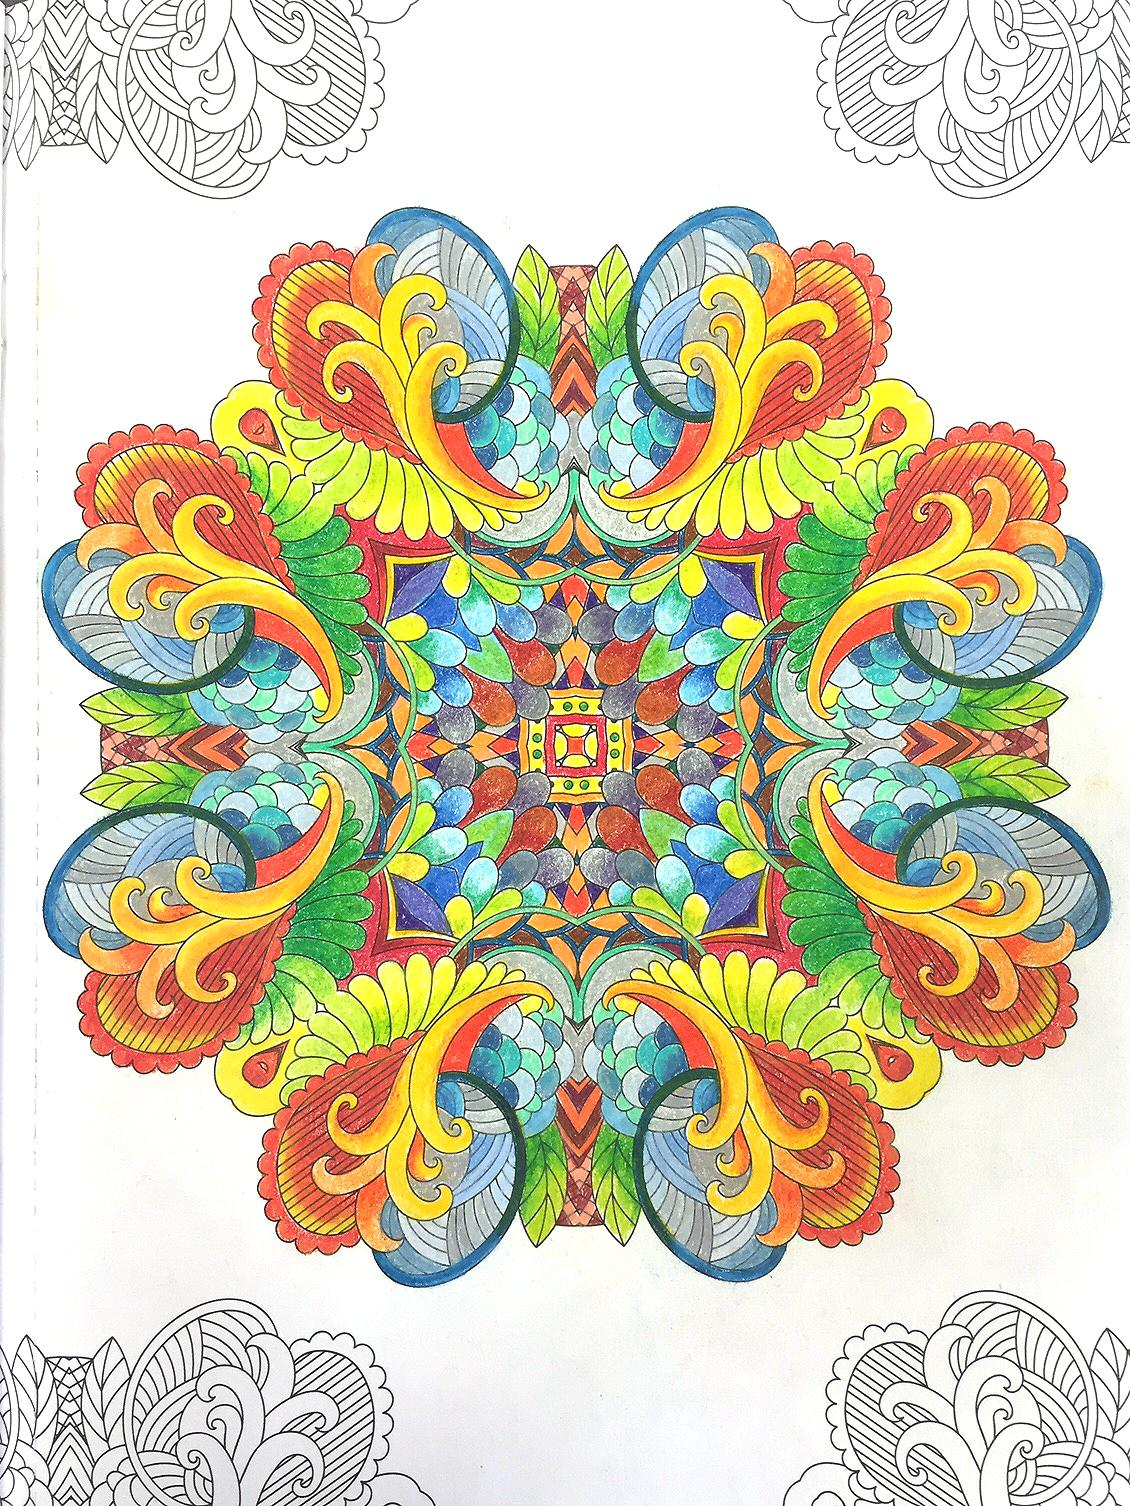 Amazoncom Mandala Wonders Color Art for Everyone 0028906067651